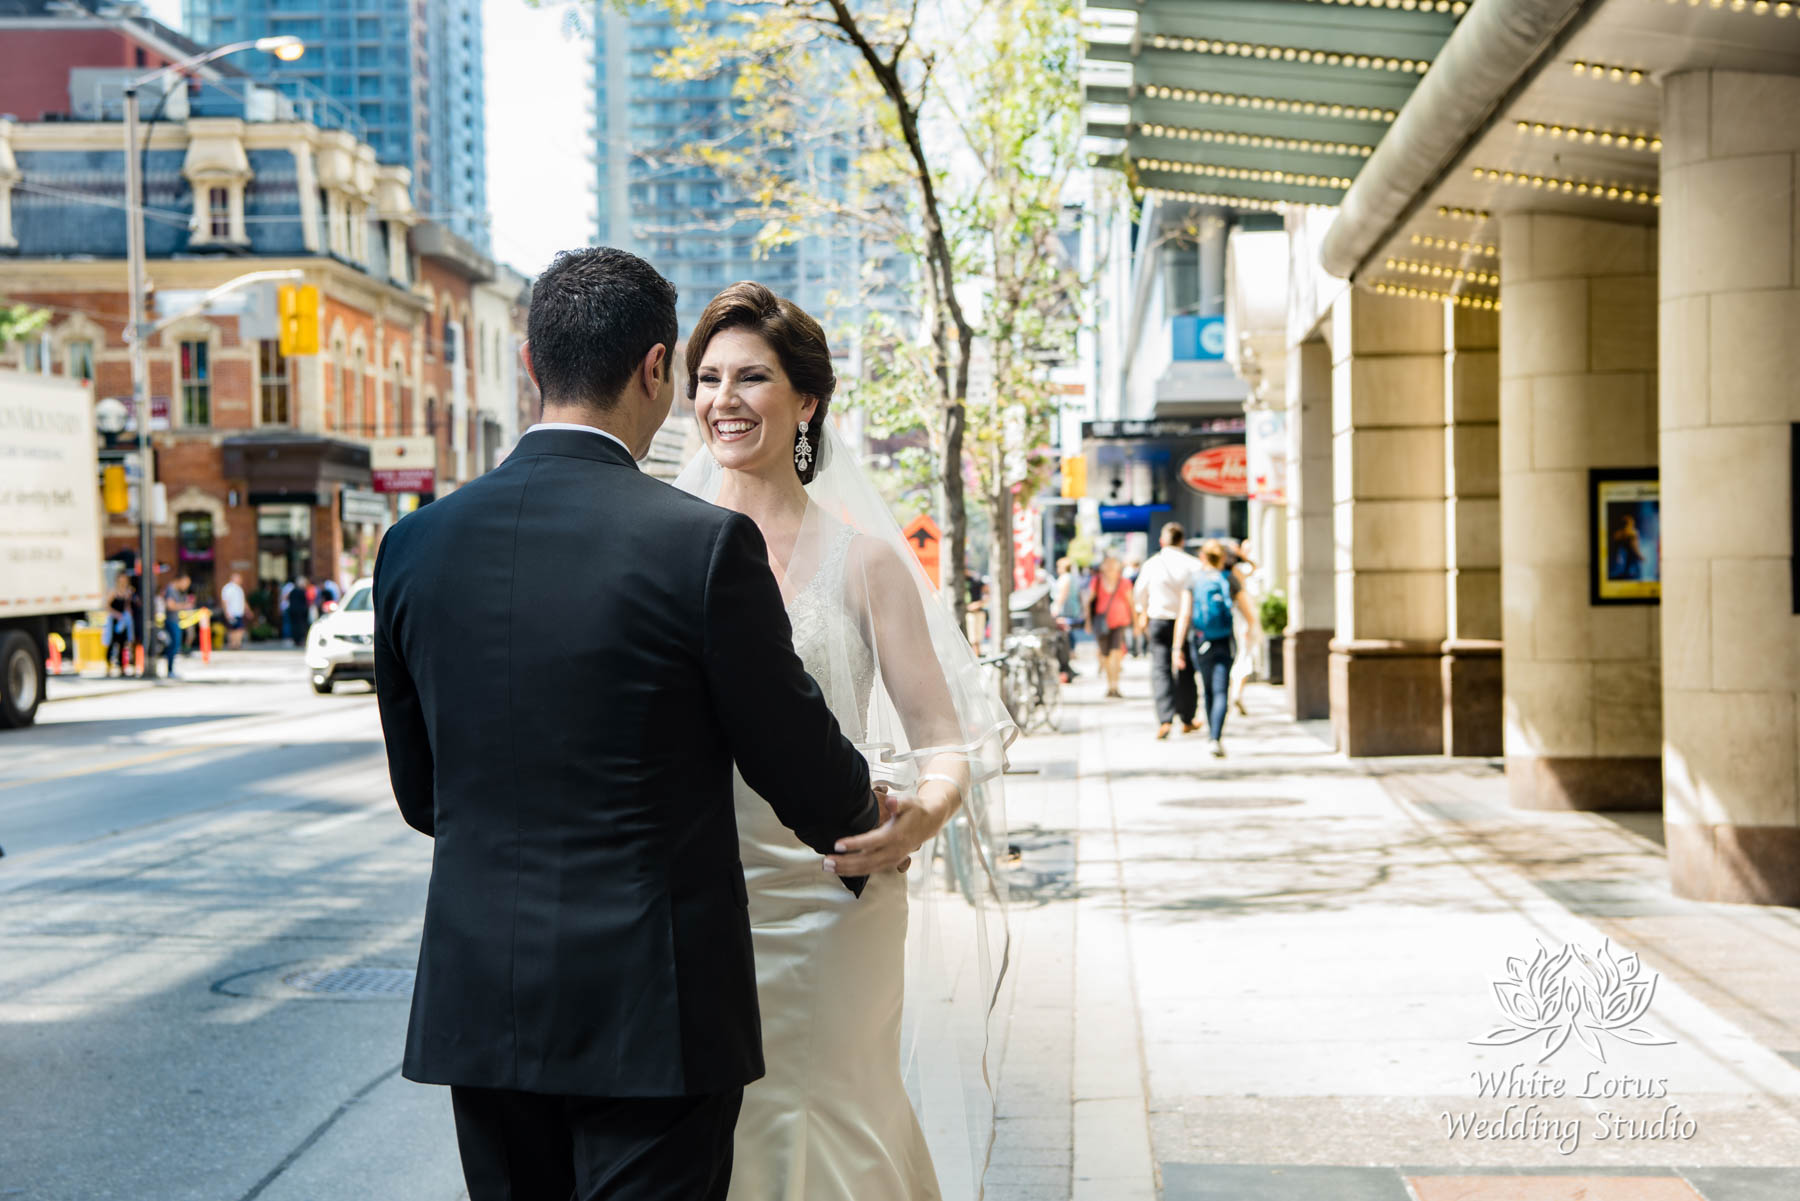 064 - Wedding - Toronto - First Look - Reveal - PW